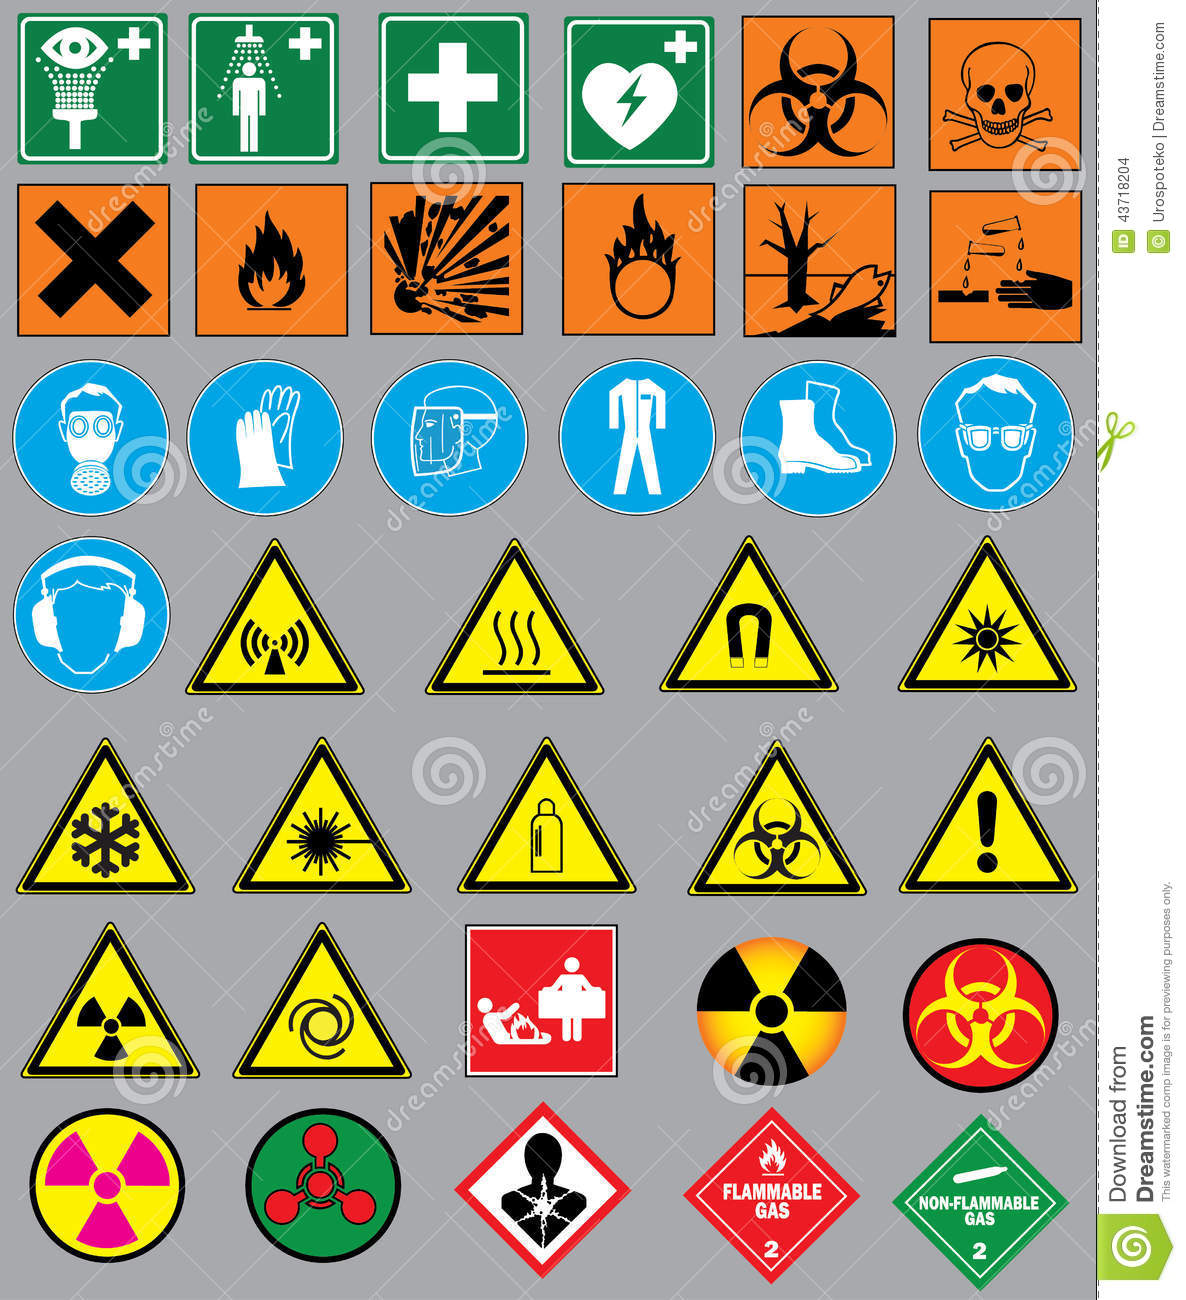 Chem M Laboratory Apparatus Safety Rules Symbols Science